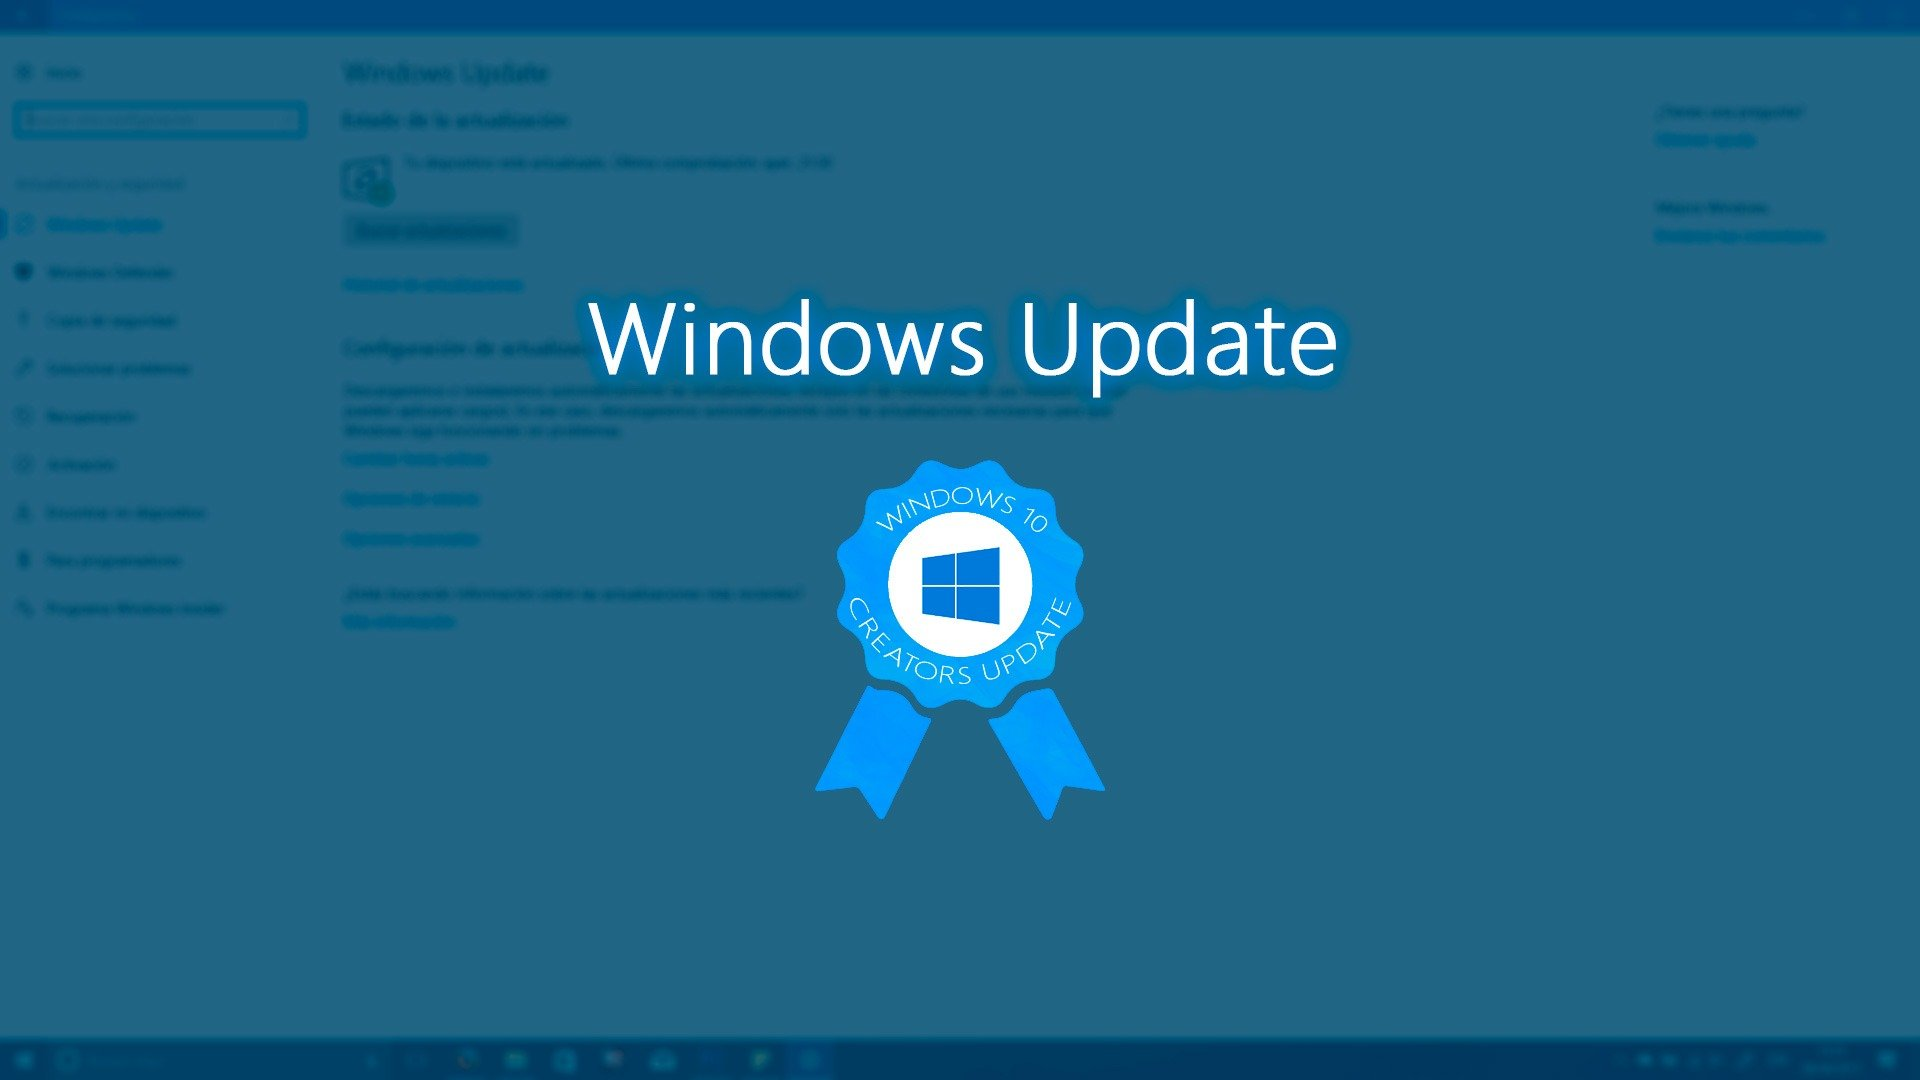 Windows update actualizaci n para creadores de windows 10 for Windows 10 update